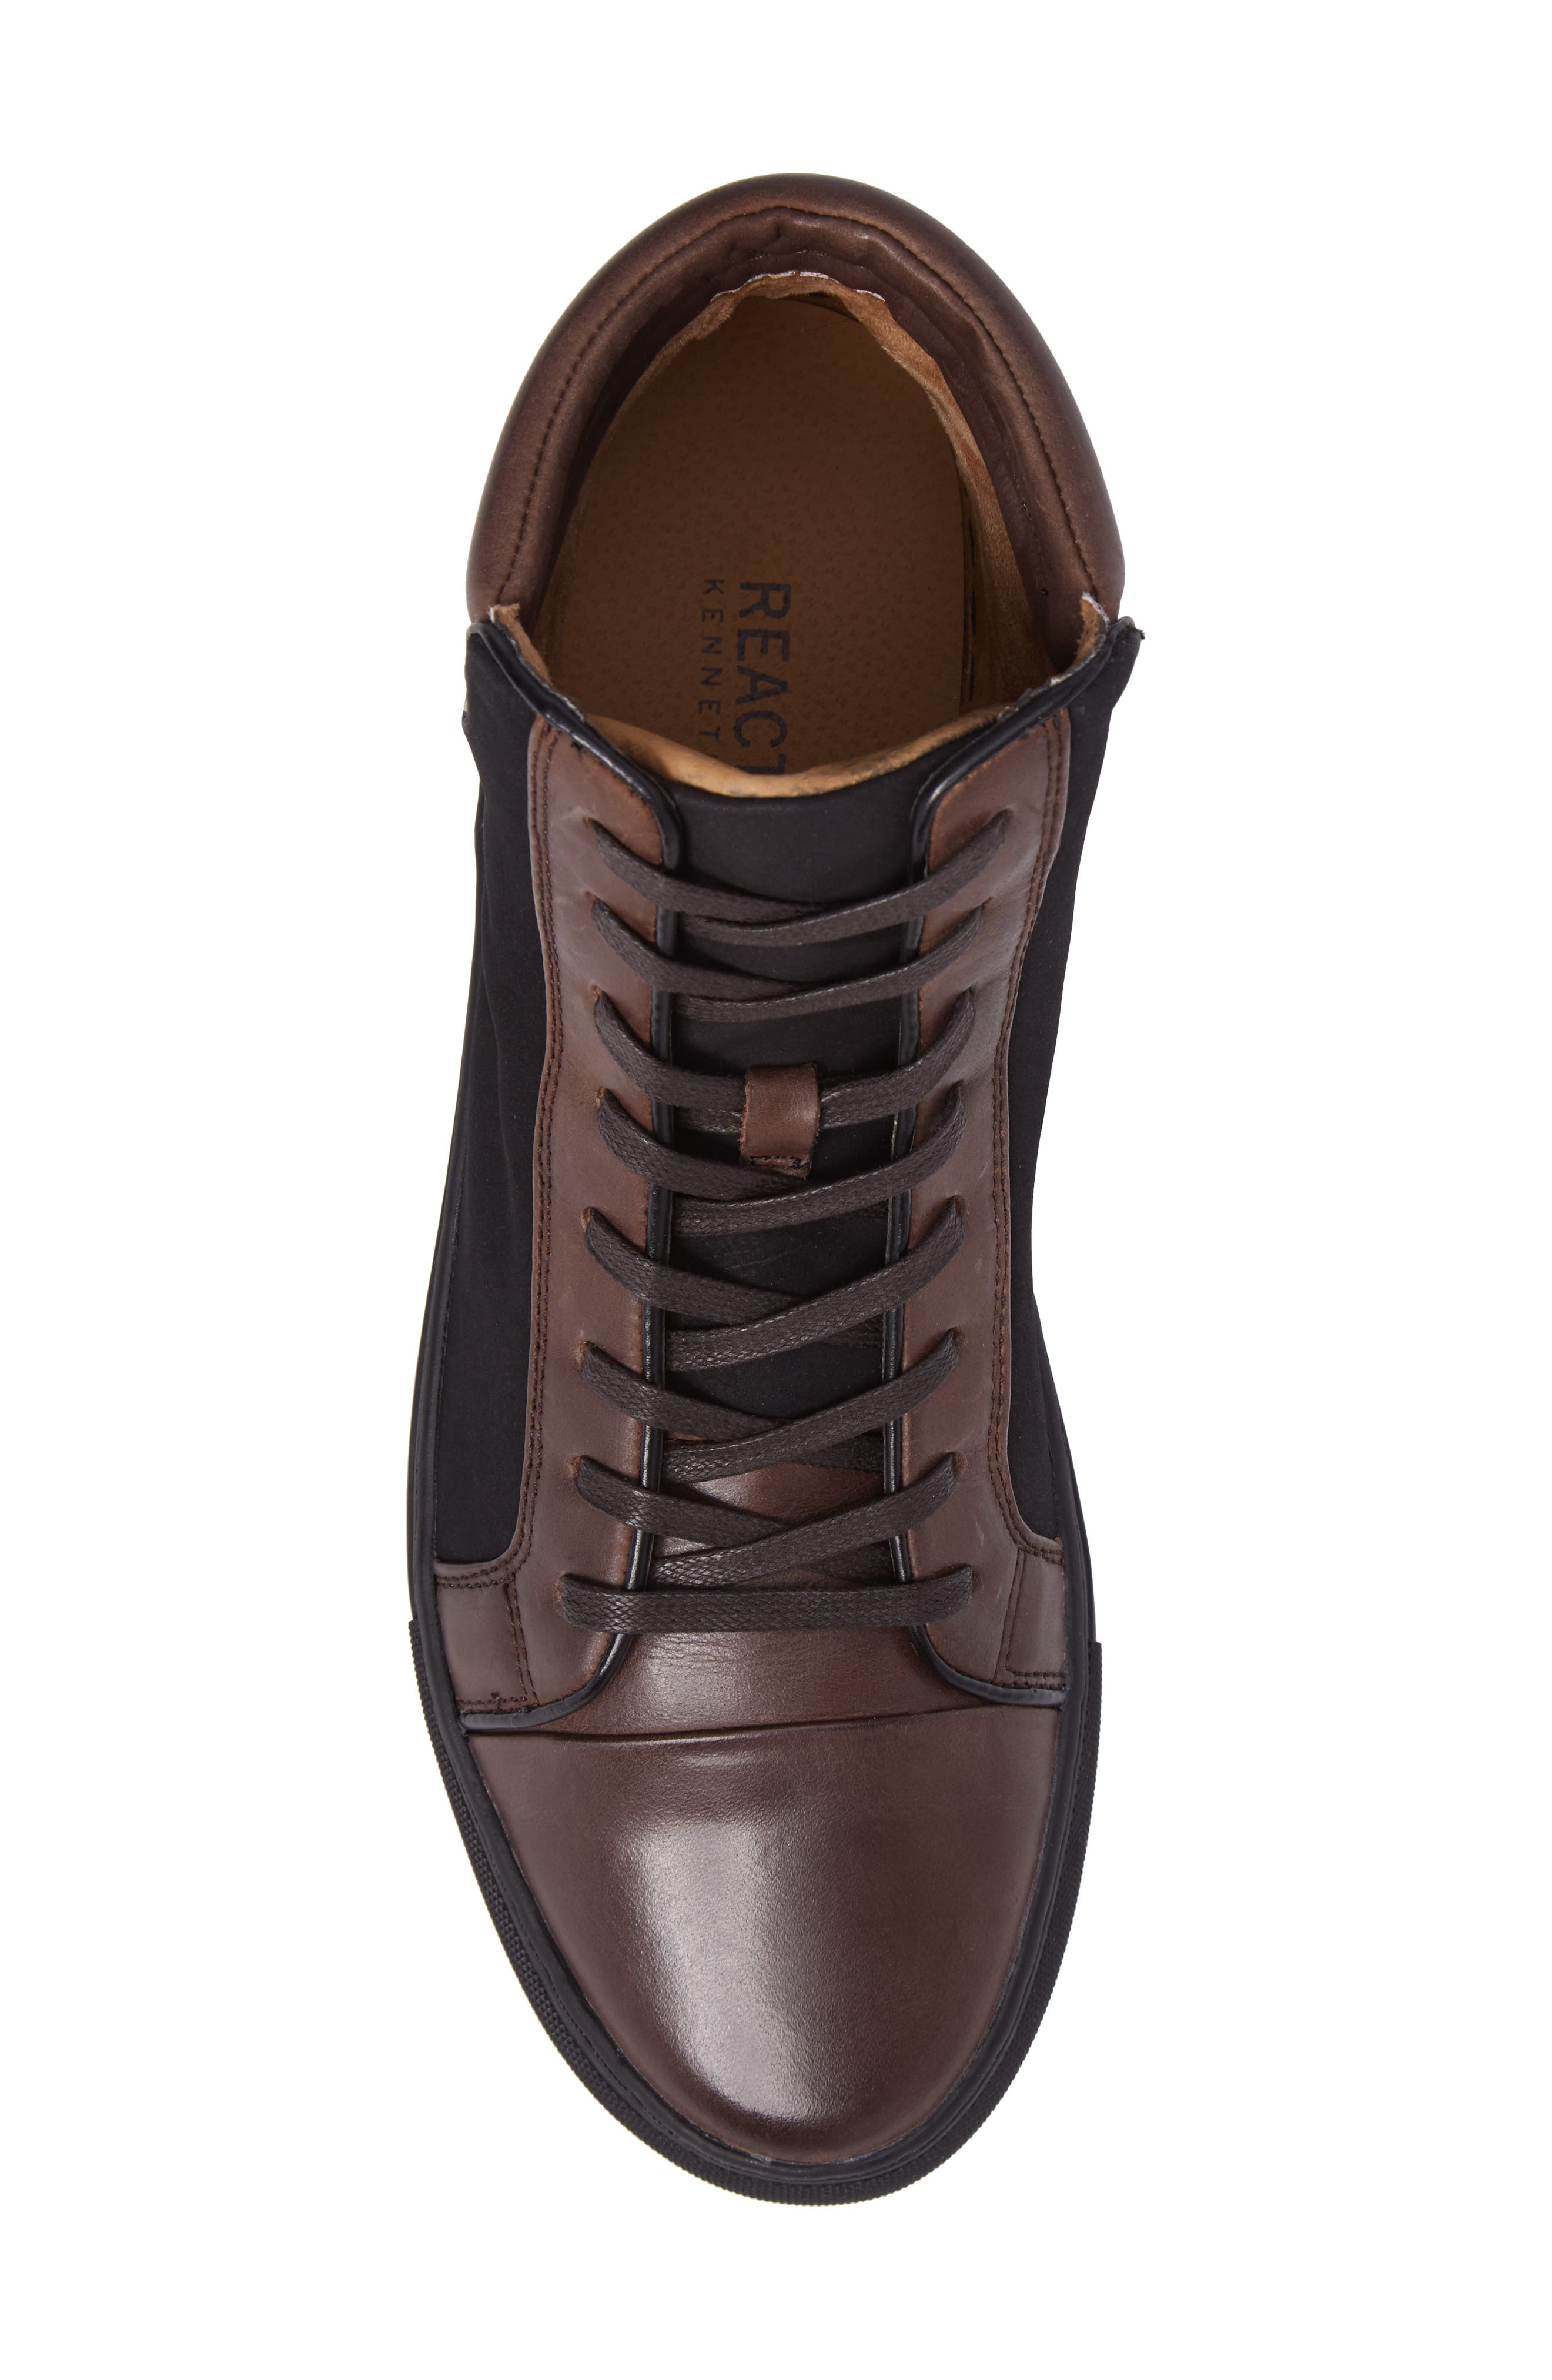 Kenneth Cole Reaction Sneaker,                             Alternate thumbnail 5, color,                             Brown/ Black